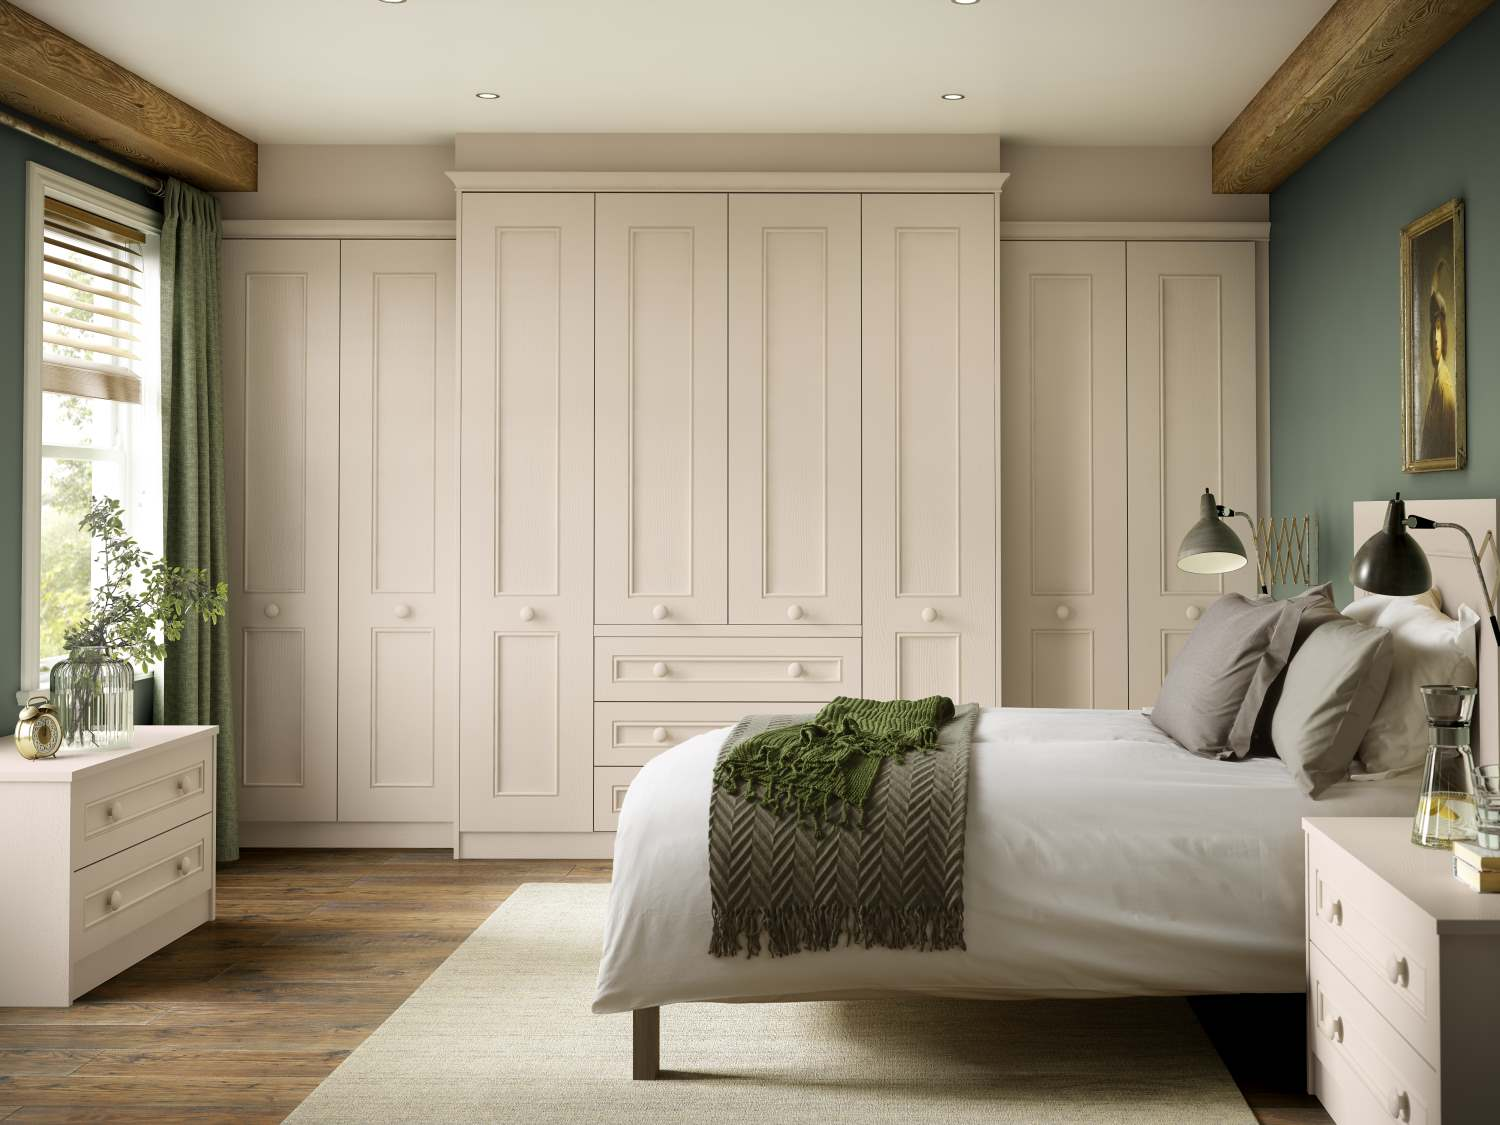 Space Efficient Bedroom Furniture: 9 Nifty Ways To Create More Storage Space In A Small Bedroom